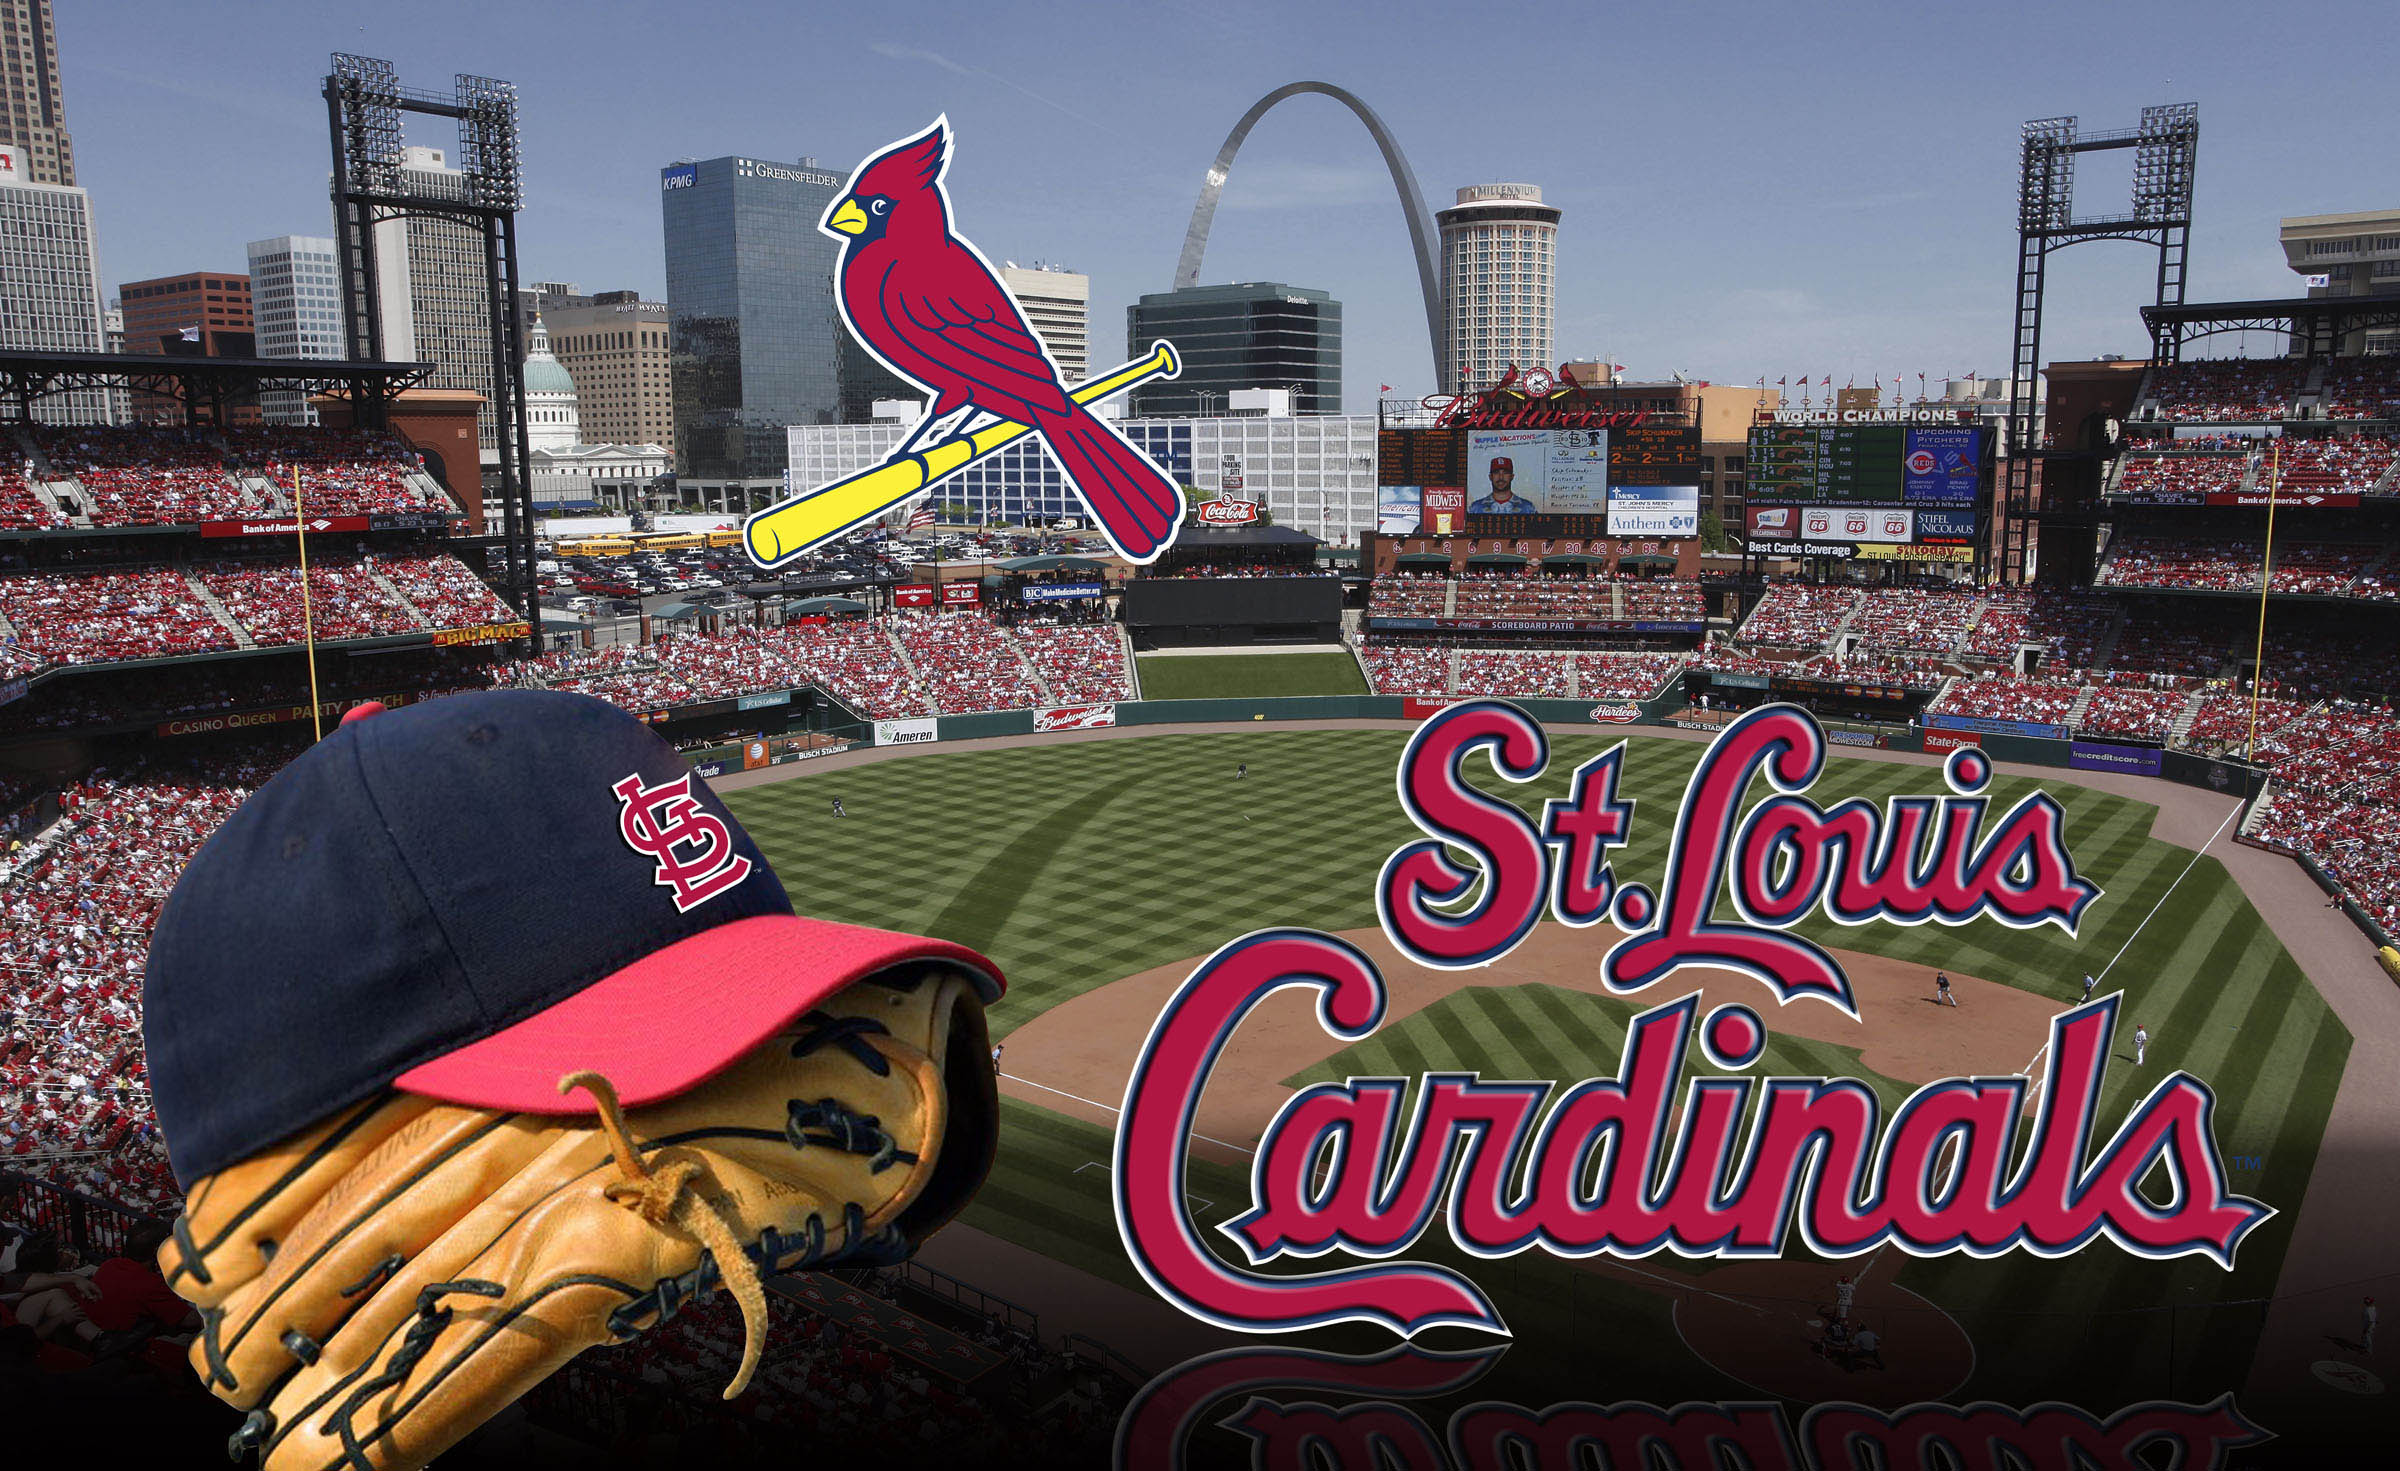 Cardinals baseball wallpaper wallpapersafari - Arizona cardinals screensaver free ...